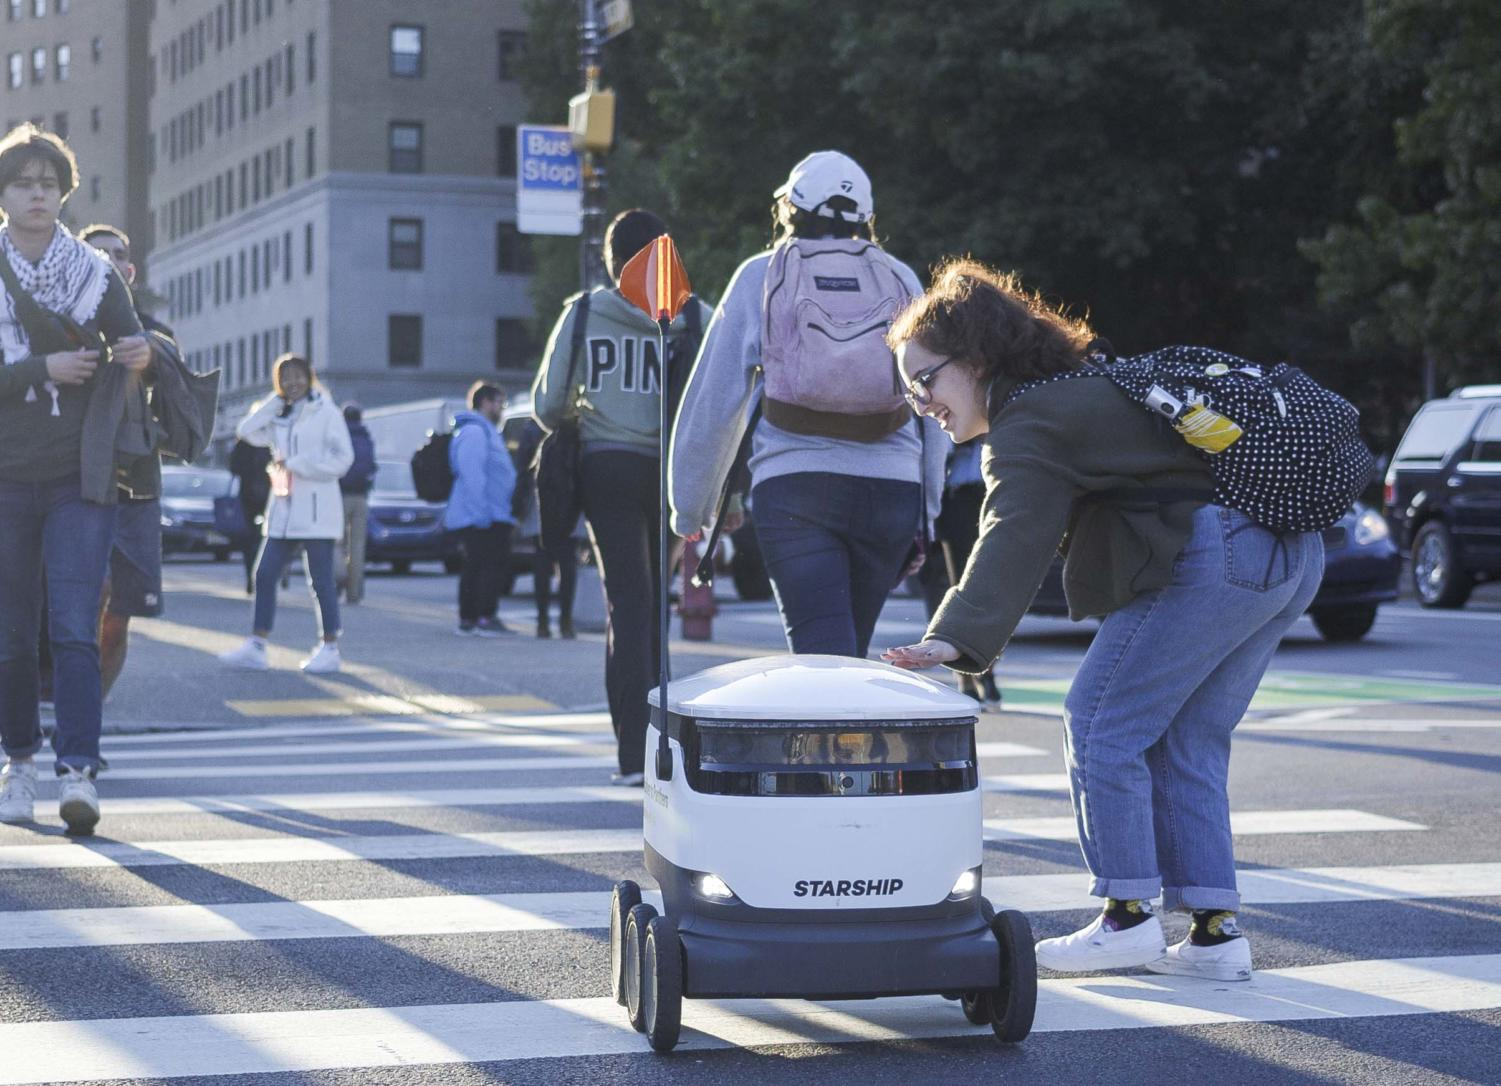 Starship's food delivery robots have been criticized for creating difficulties at crosswalks for wheelchair-using students.